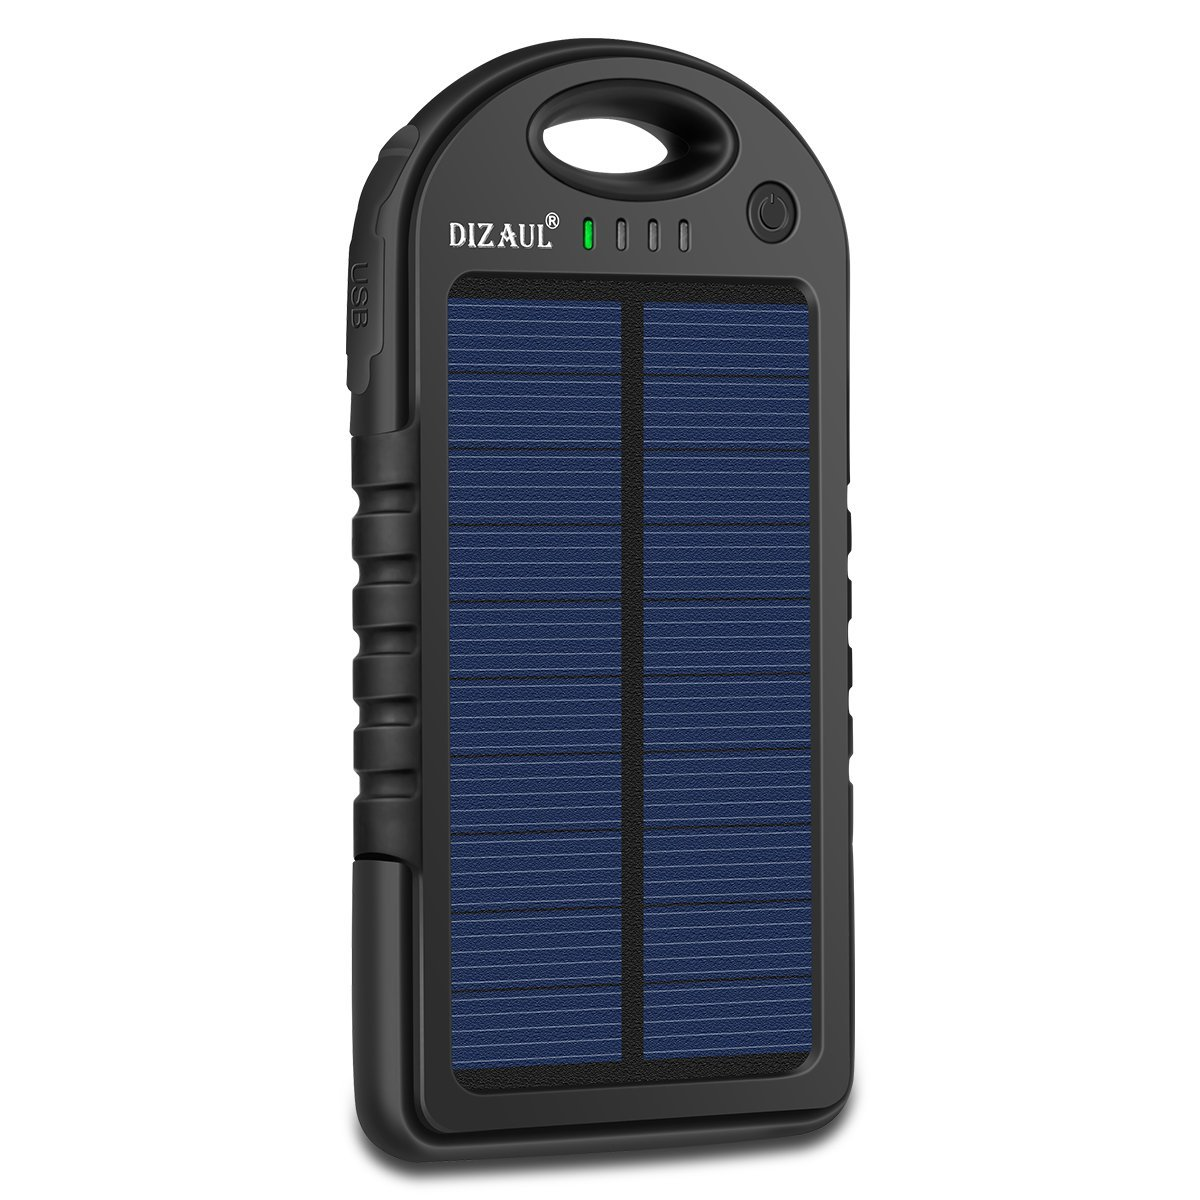 Solar-Charger-Dizaul-5000mAh-Portable-Solar-Power-Bank-Waterproof-Shockproof-Dustproof-Dual-USB-Battery-Bank-for-Cell-Phone-Samsung-Android-Phones-Windows-Phones-GoPro-Camera-GPS-and-More